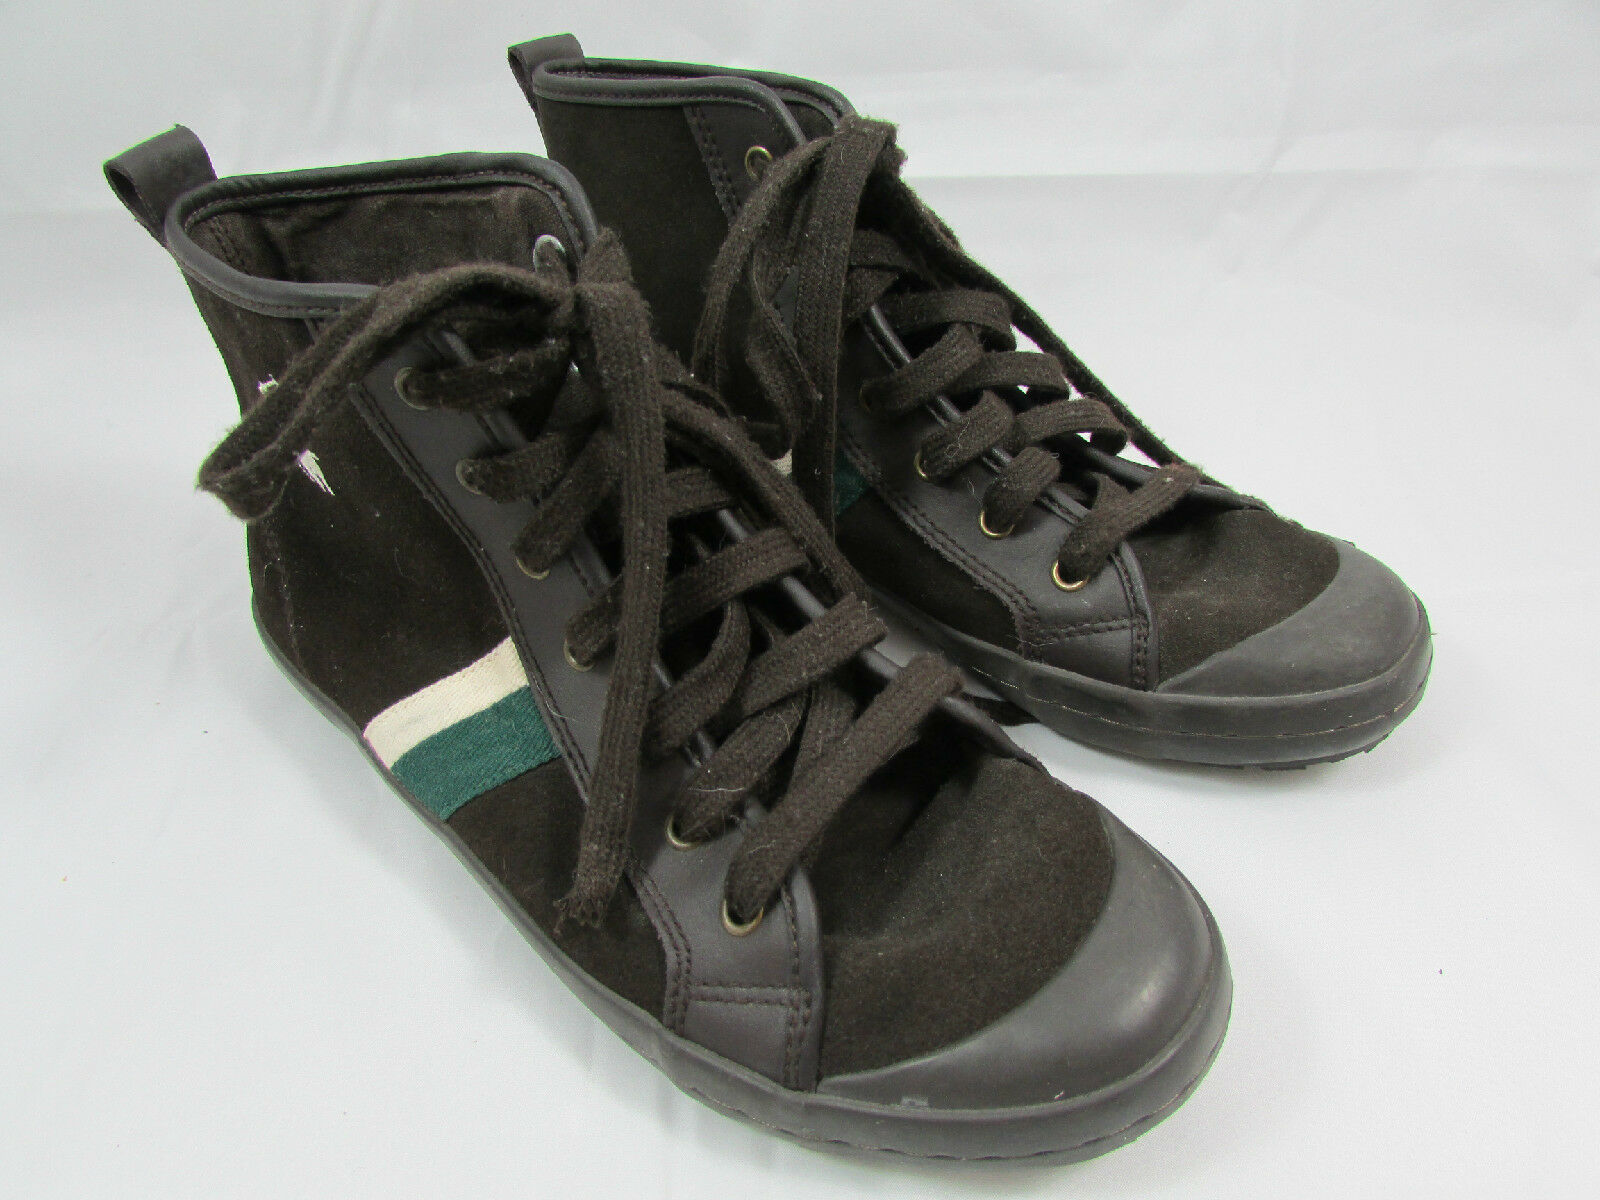 Men's Polo Ralph Lauren High Top Brown Canvas Casual Sneakers Shoes Size 6